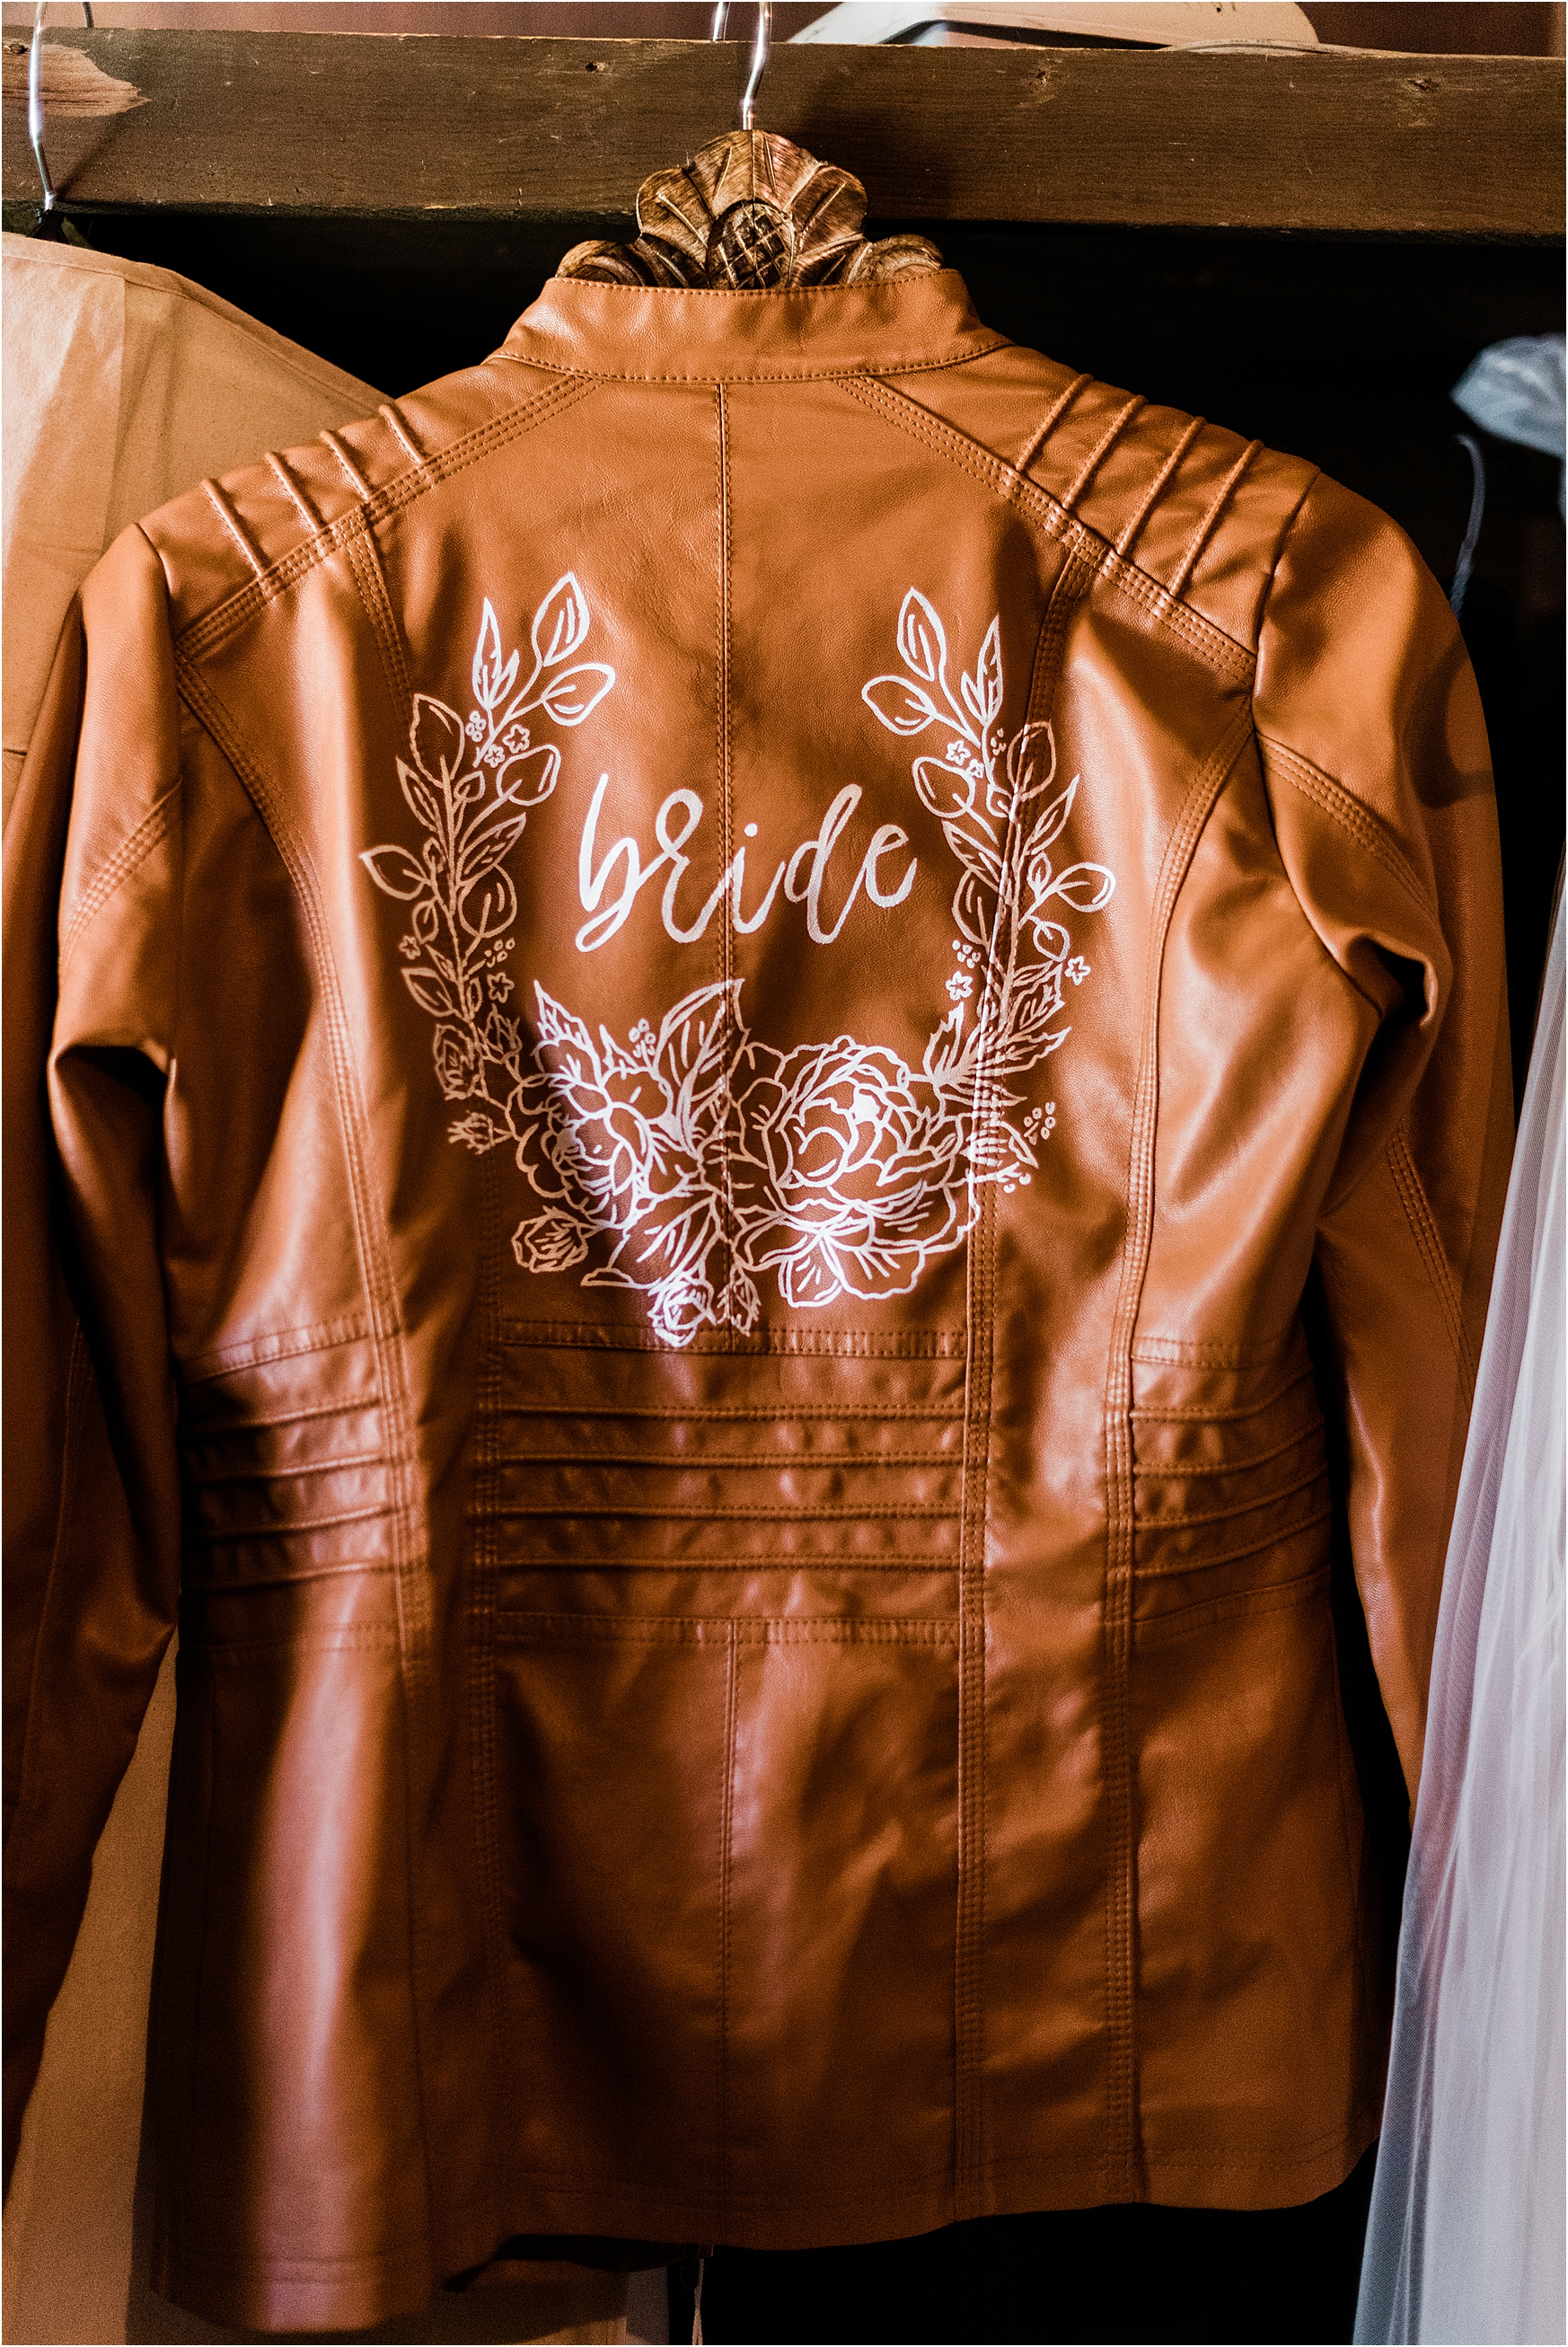 Customized bridal leather jacket with hand-stenciled decal. Image by Forthright Photo.